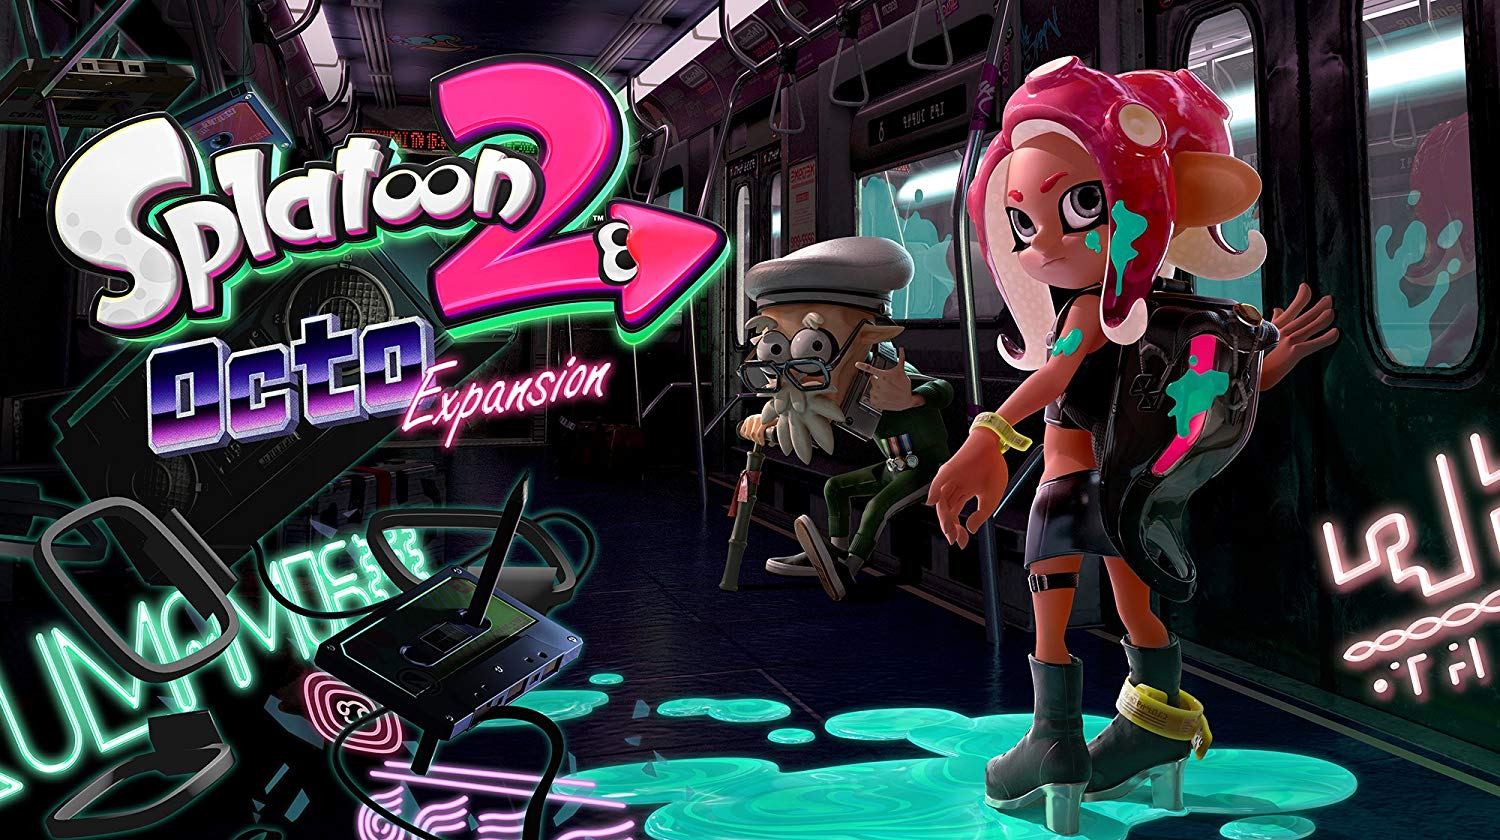 Amazon.com: Splatoon 2: Octo Expansion.